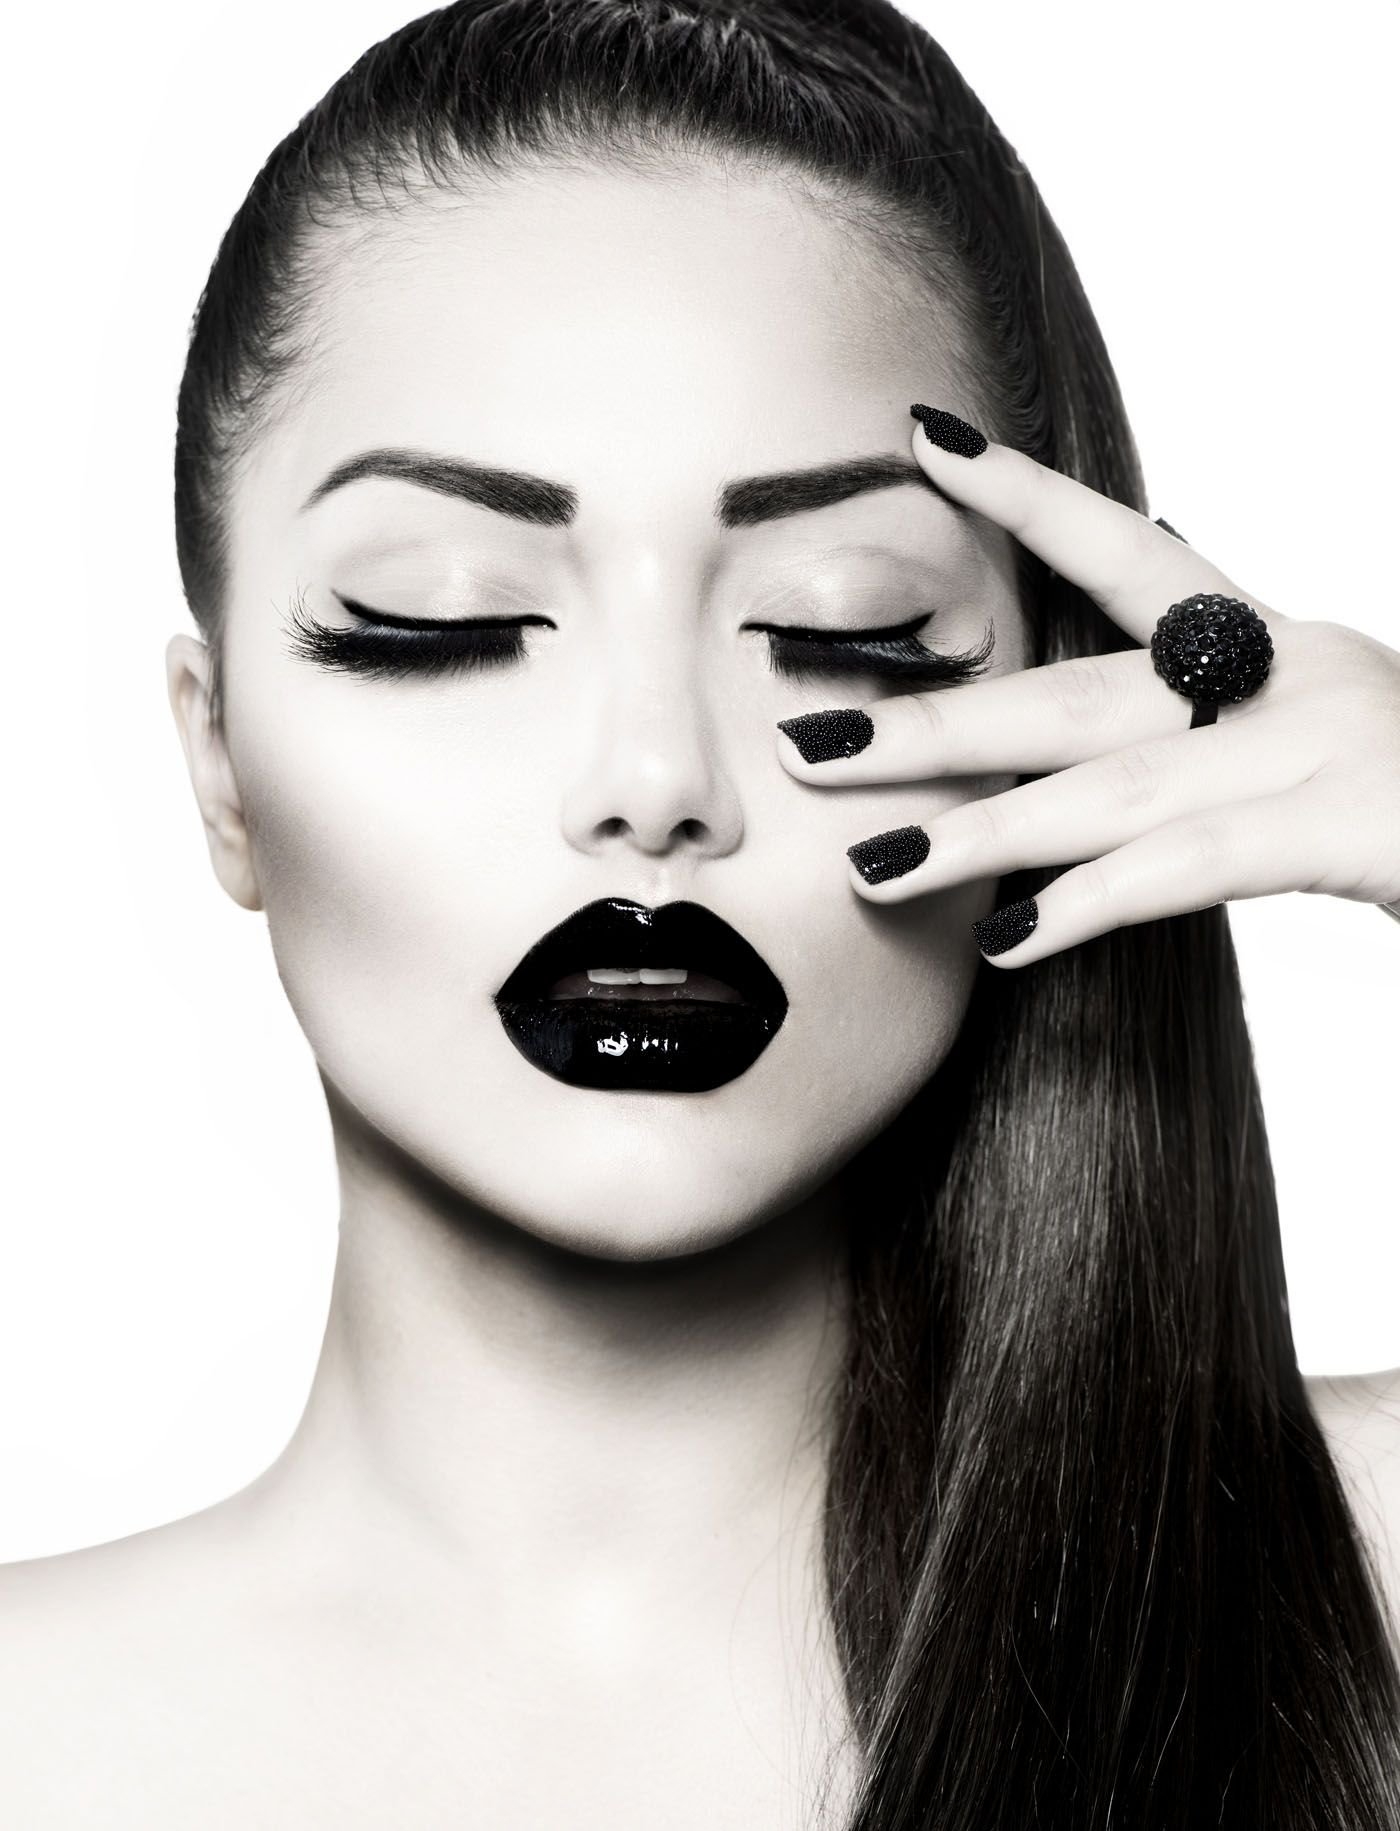 10 Perfect Black And White Makeup Ideas gracious and passionate fashion photography fashion photography 2020